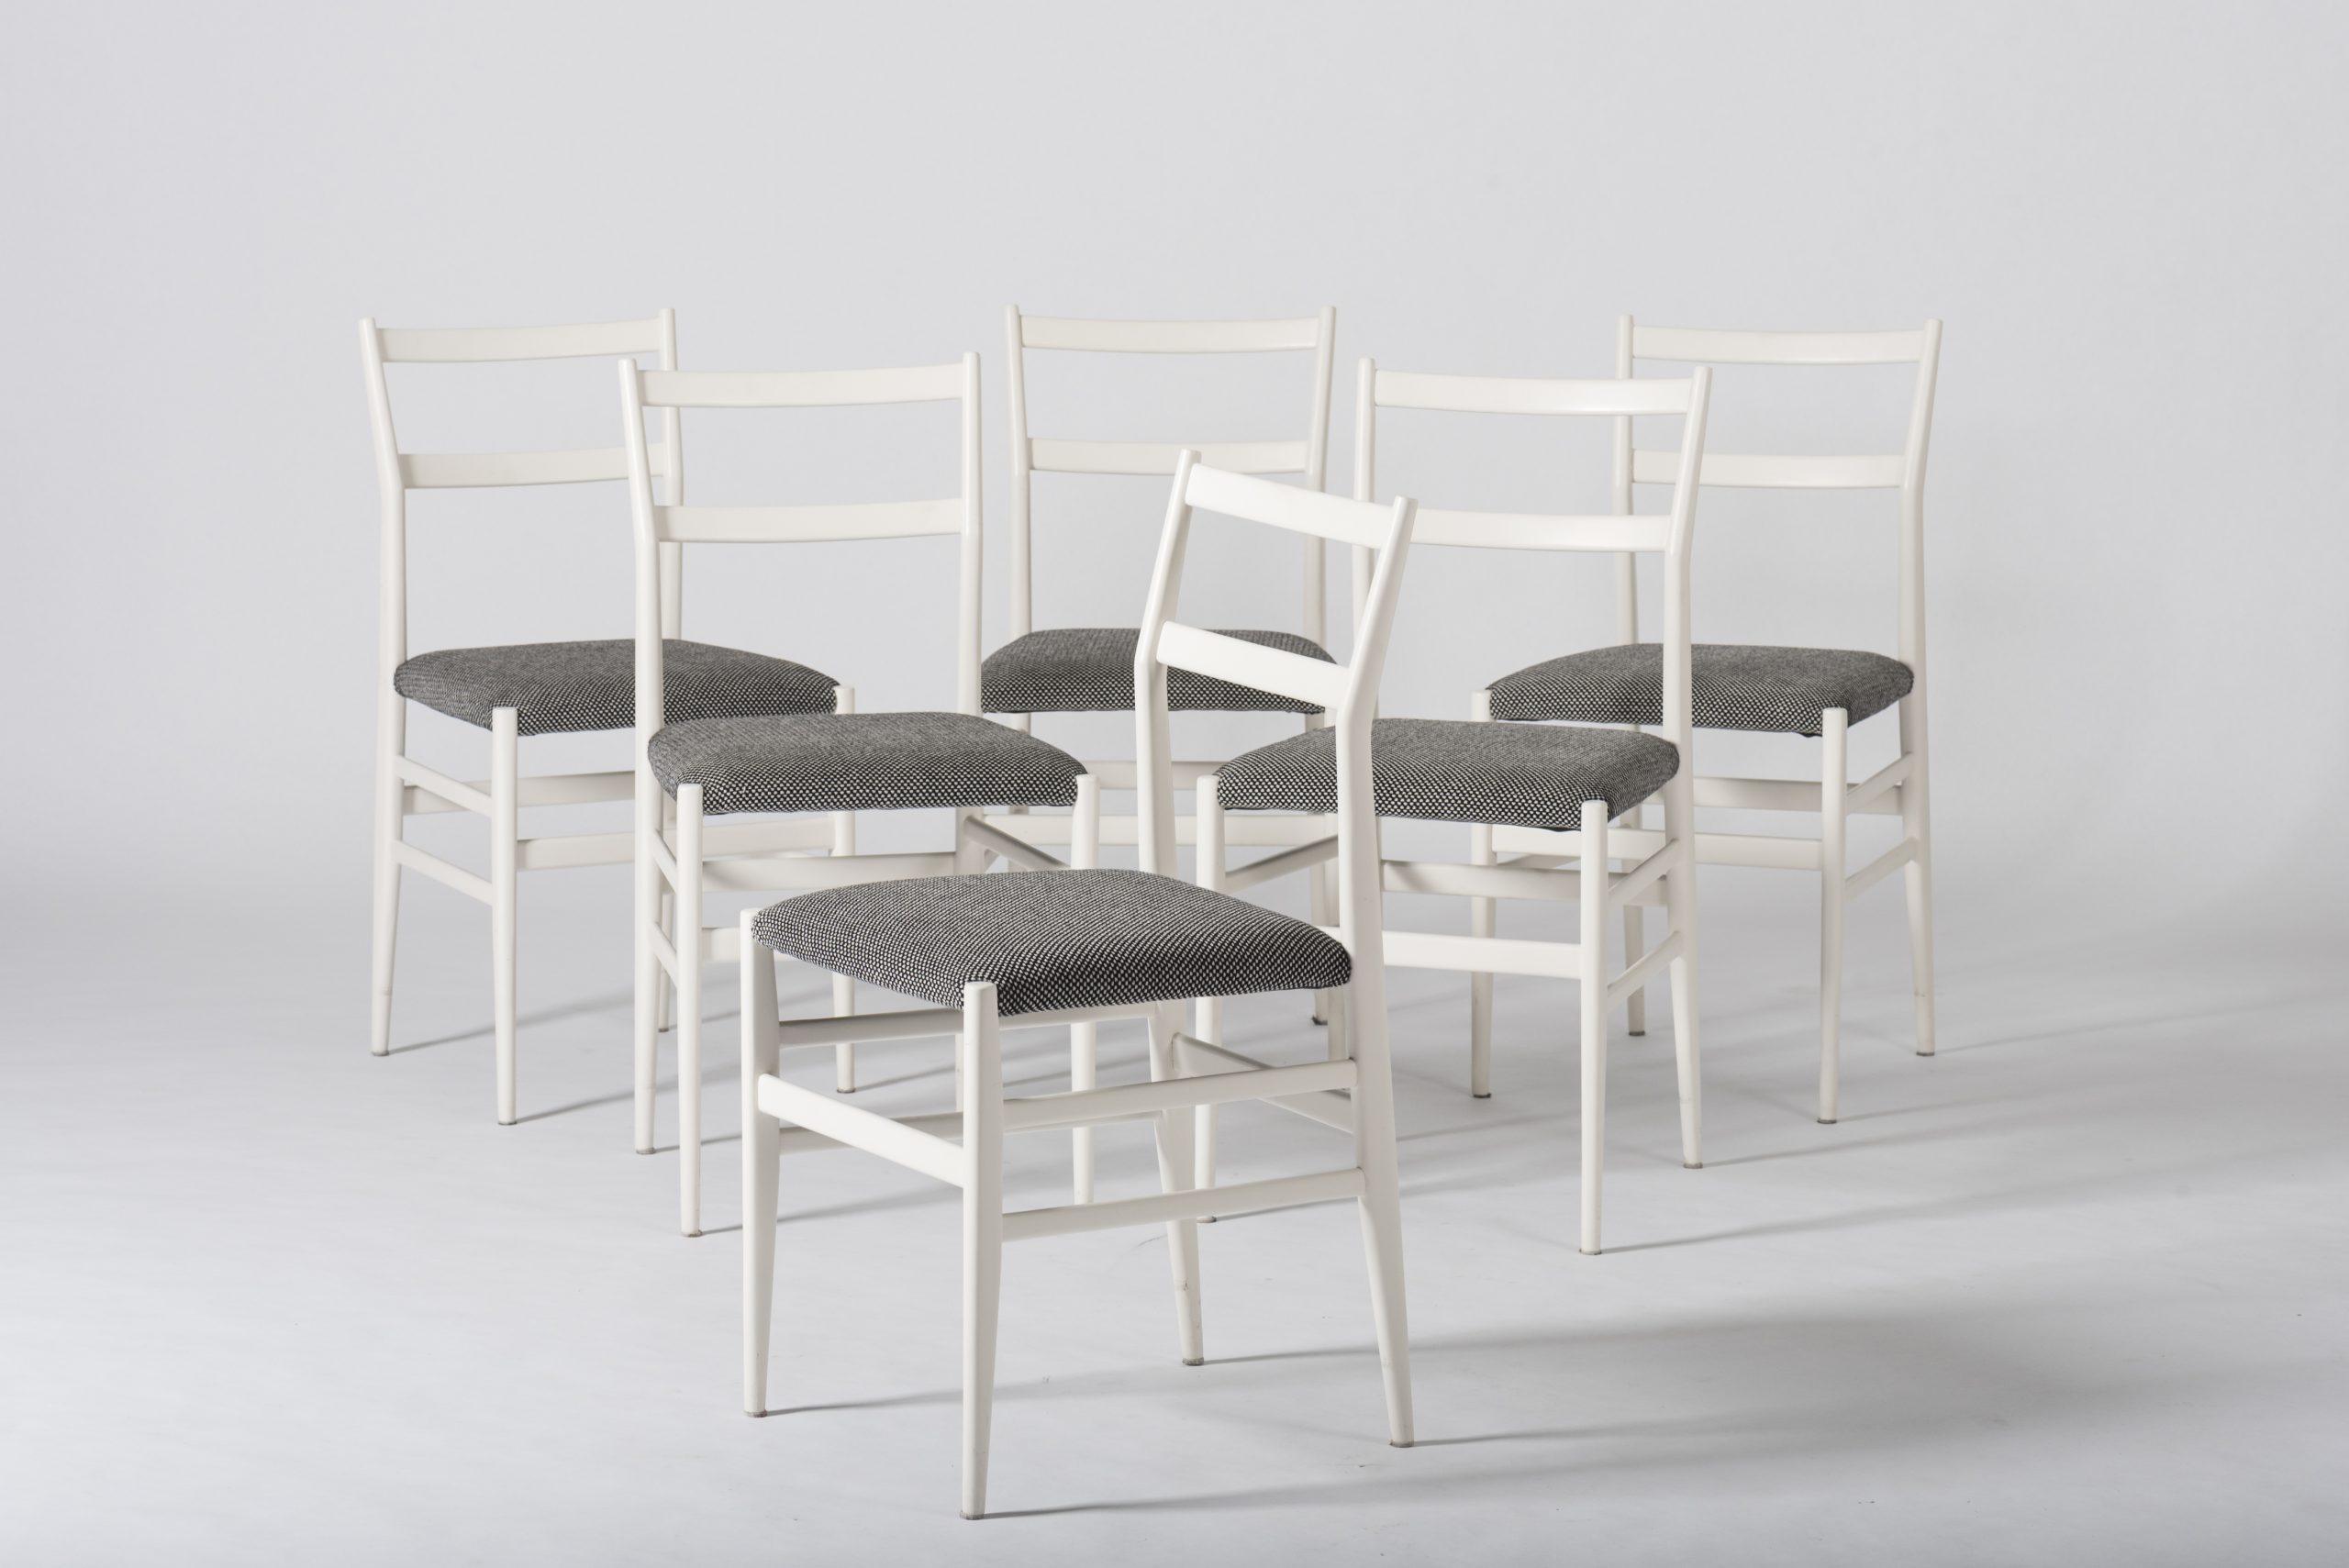 White Leggera chairs model 646/2 by Gio Ponti at Casati Gallery